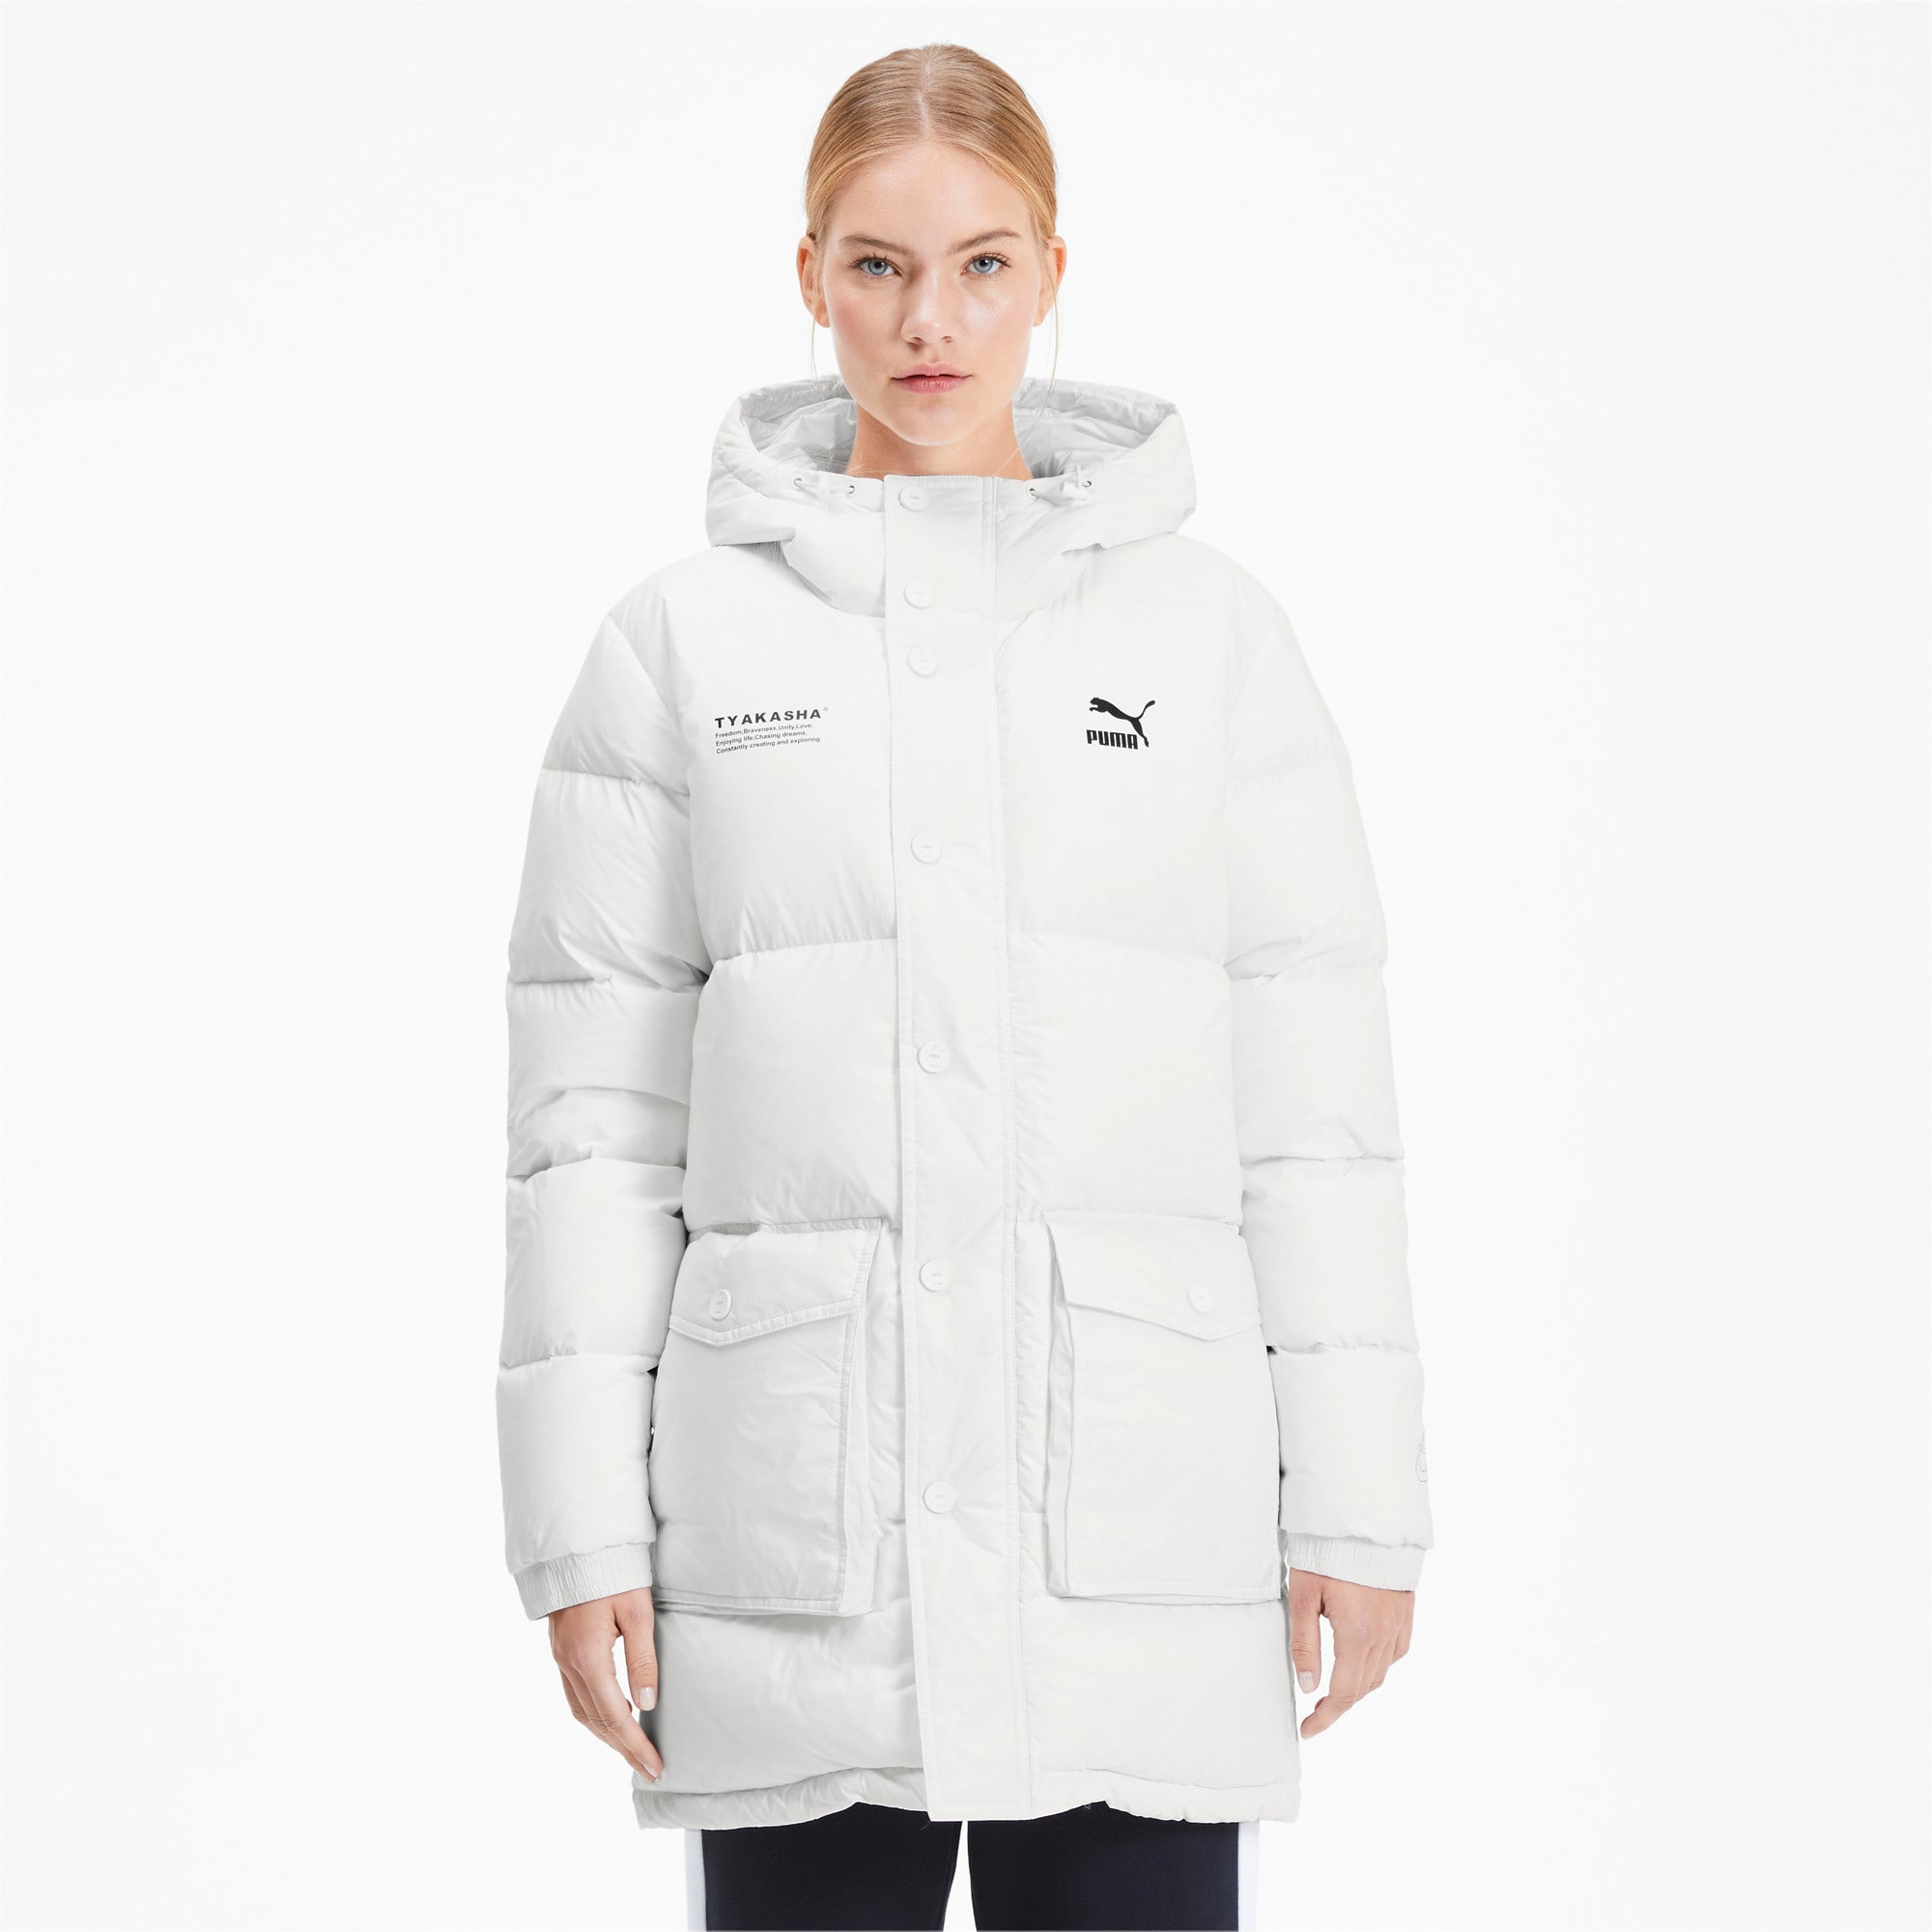 Thumbnail 2 of PUMA x TYAKASHA Down Parka, Puma White, medium